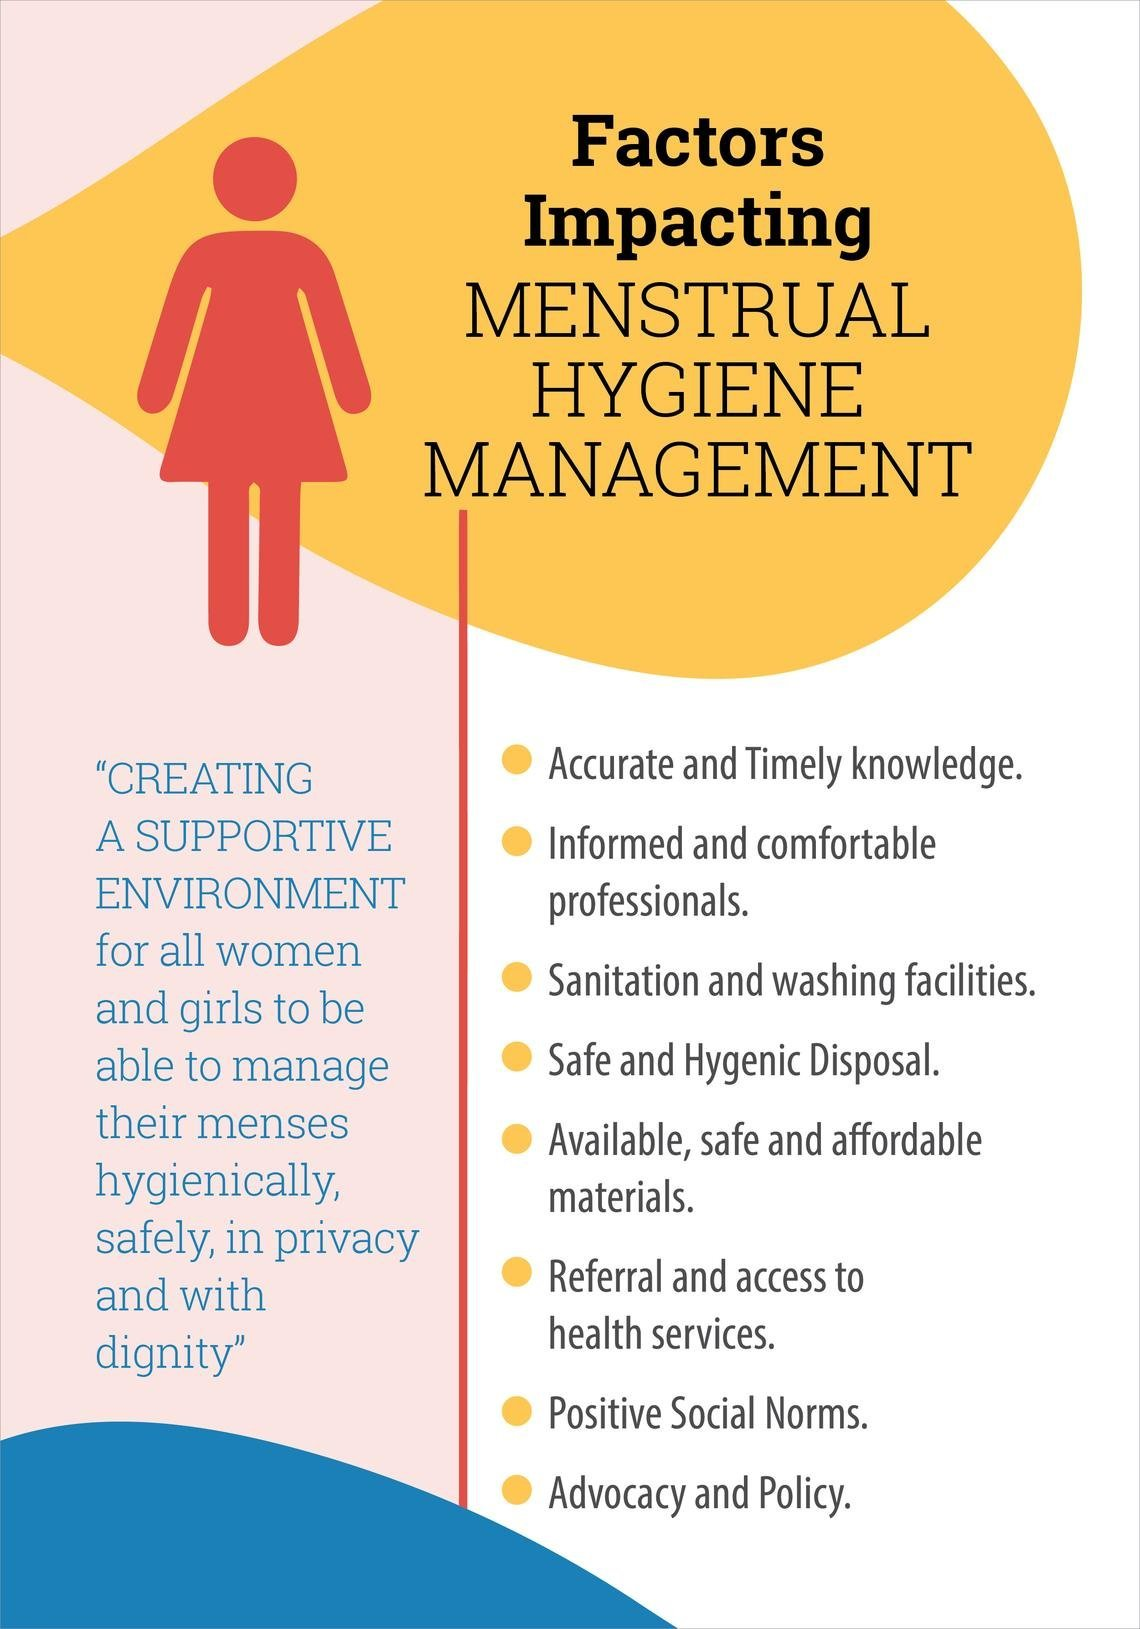 Factors Impacting Menstrual Hygiene Management